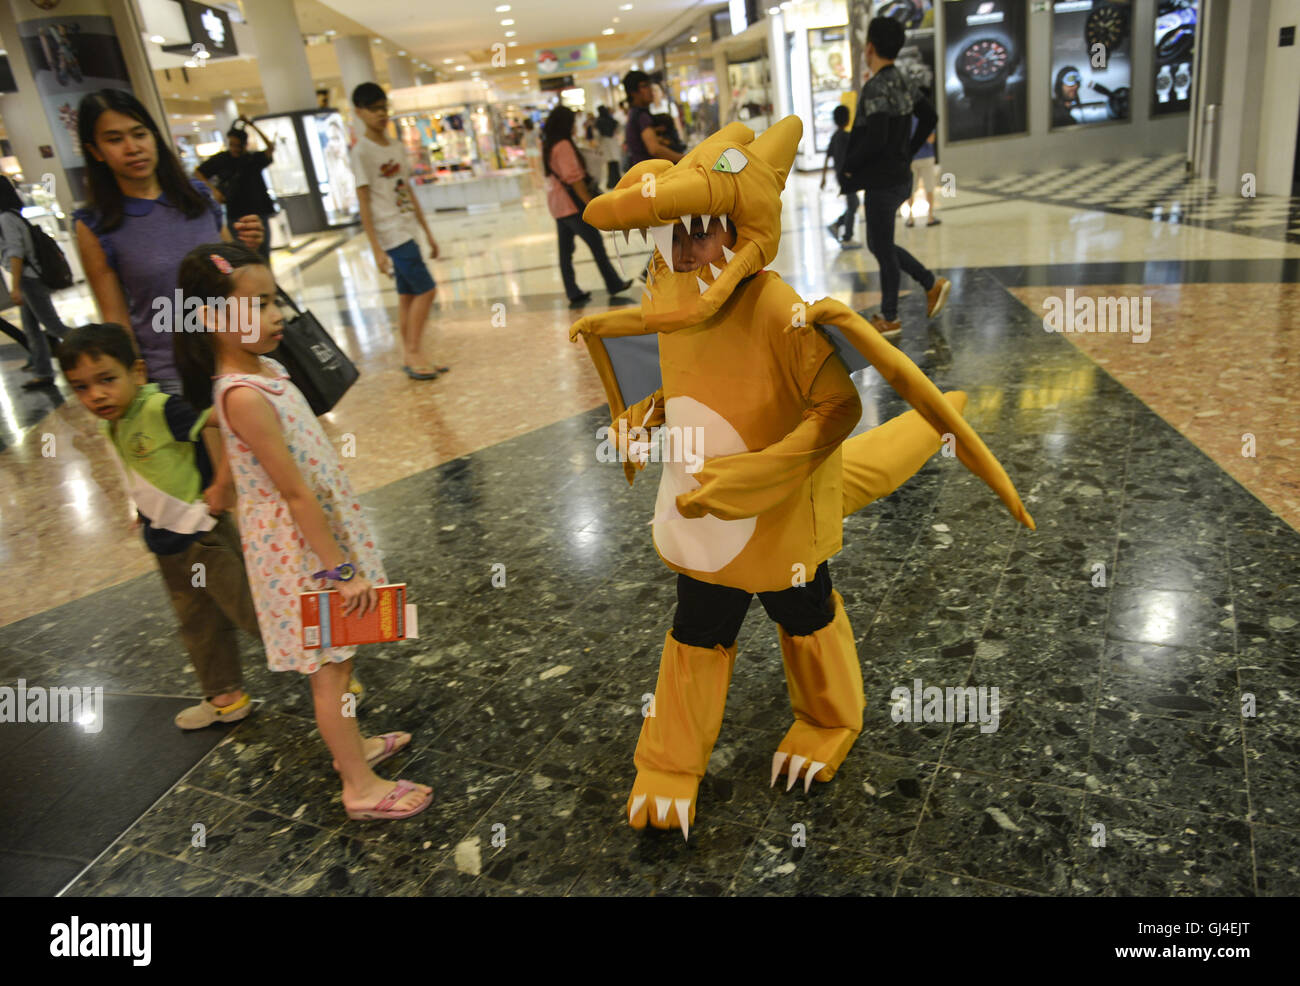 A boy wear Charizard costume fromu0027u0027 Pokemon Gou0027u0027 game during Pokemon Costume Contest at Sunway Pyramid Shopping Mall outside Kuala Lumpur.  sc 1 st  Alamy & Sunway Selangor Malaysia. 13th Aug 2016. A boy wear Charizard ...